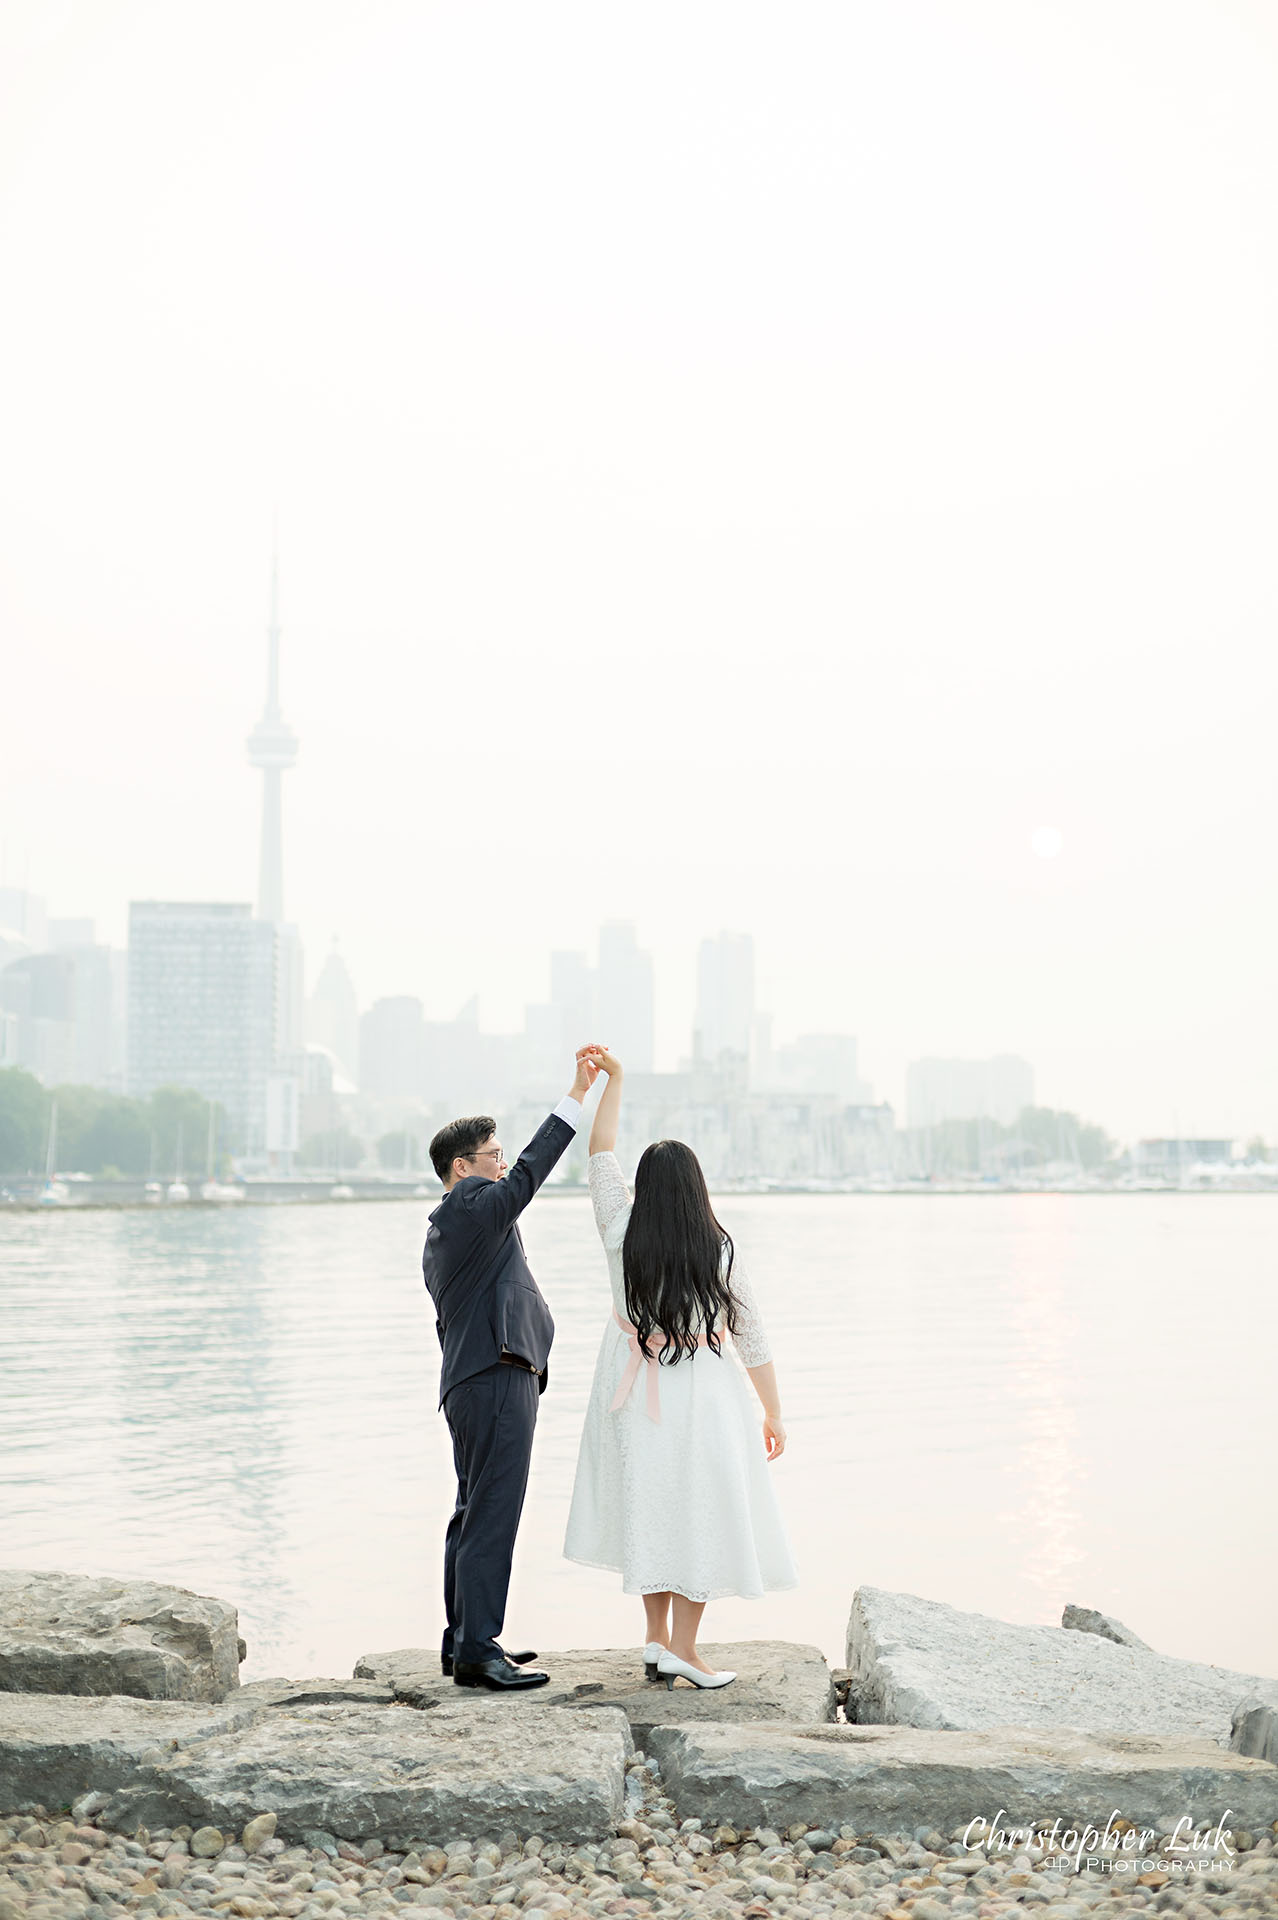 Christopher Luk Toronto Wedding Photographer Trillium Park Engagement Session Ontario Place Waterfront Skyline Natural Candid Photojournalistic Bride Groom Dancing Spinning Together Loving CN Tower